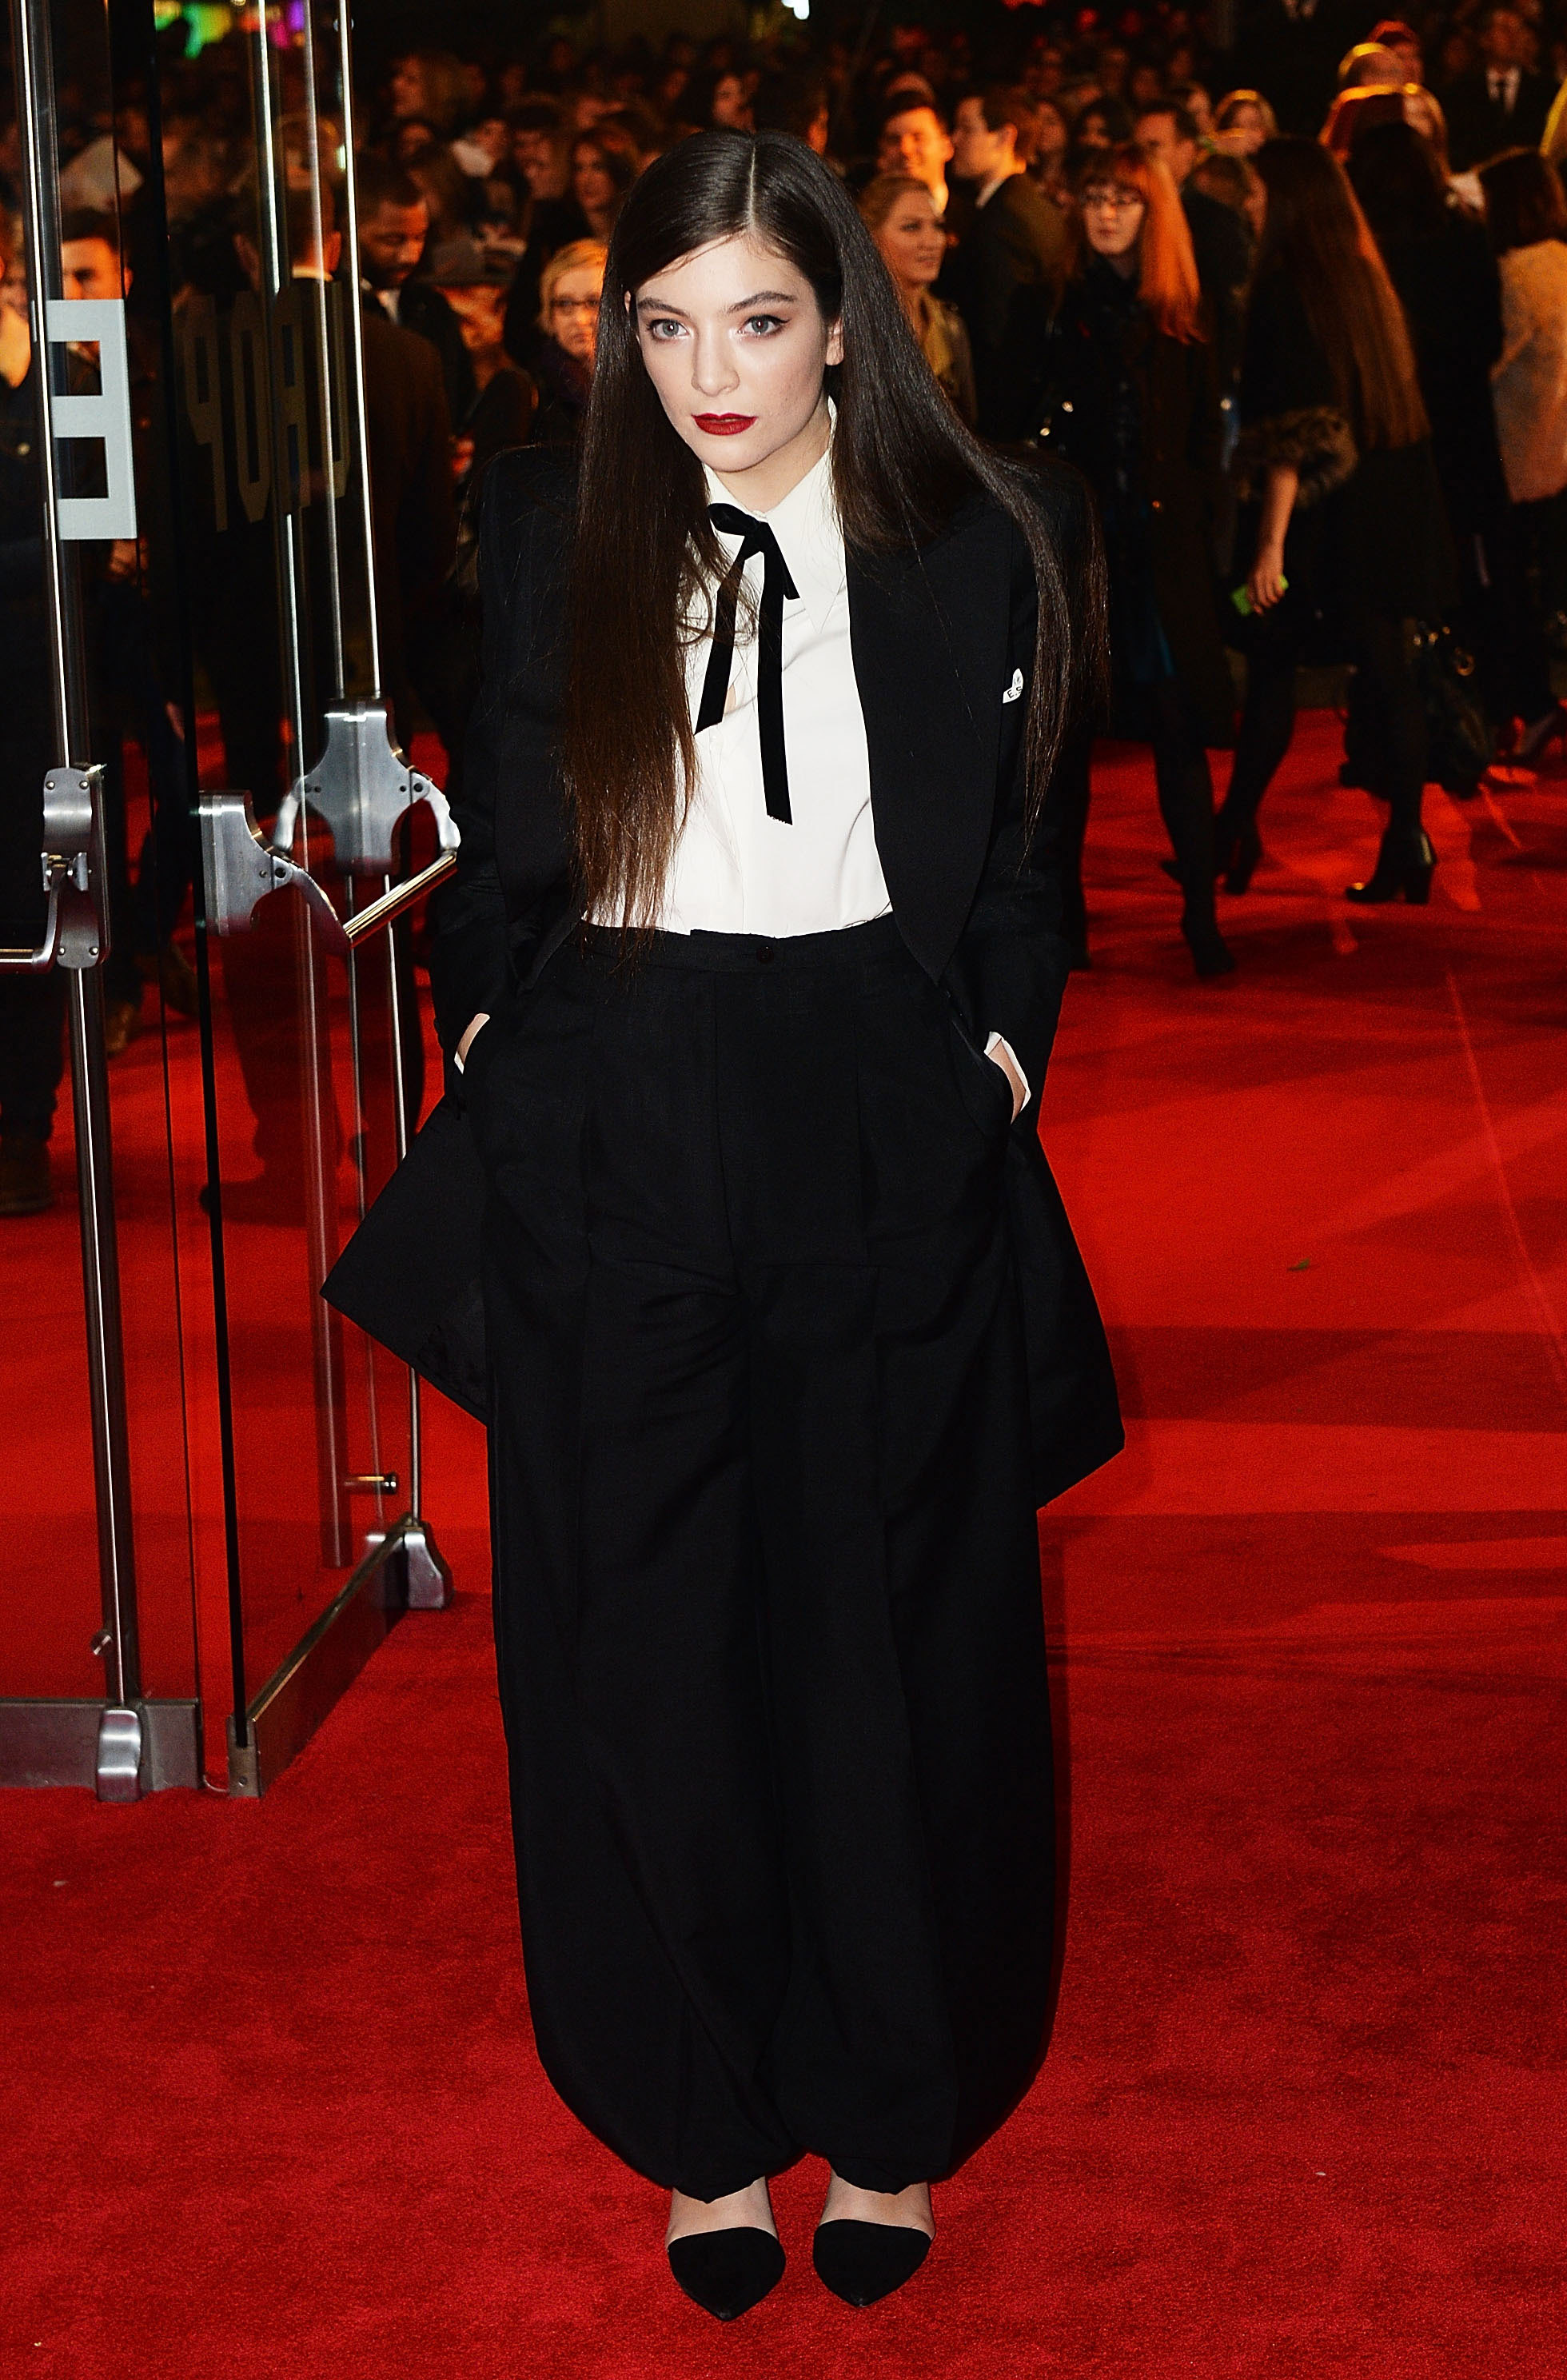 lorde posing on the red carpet with her hands in her pockets 2014